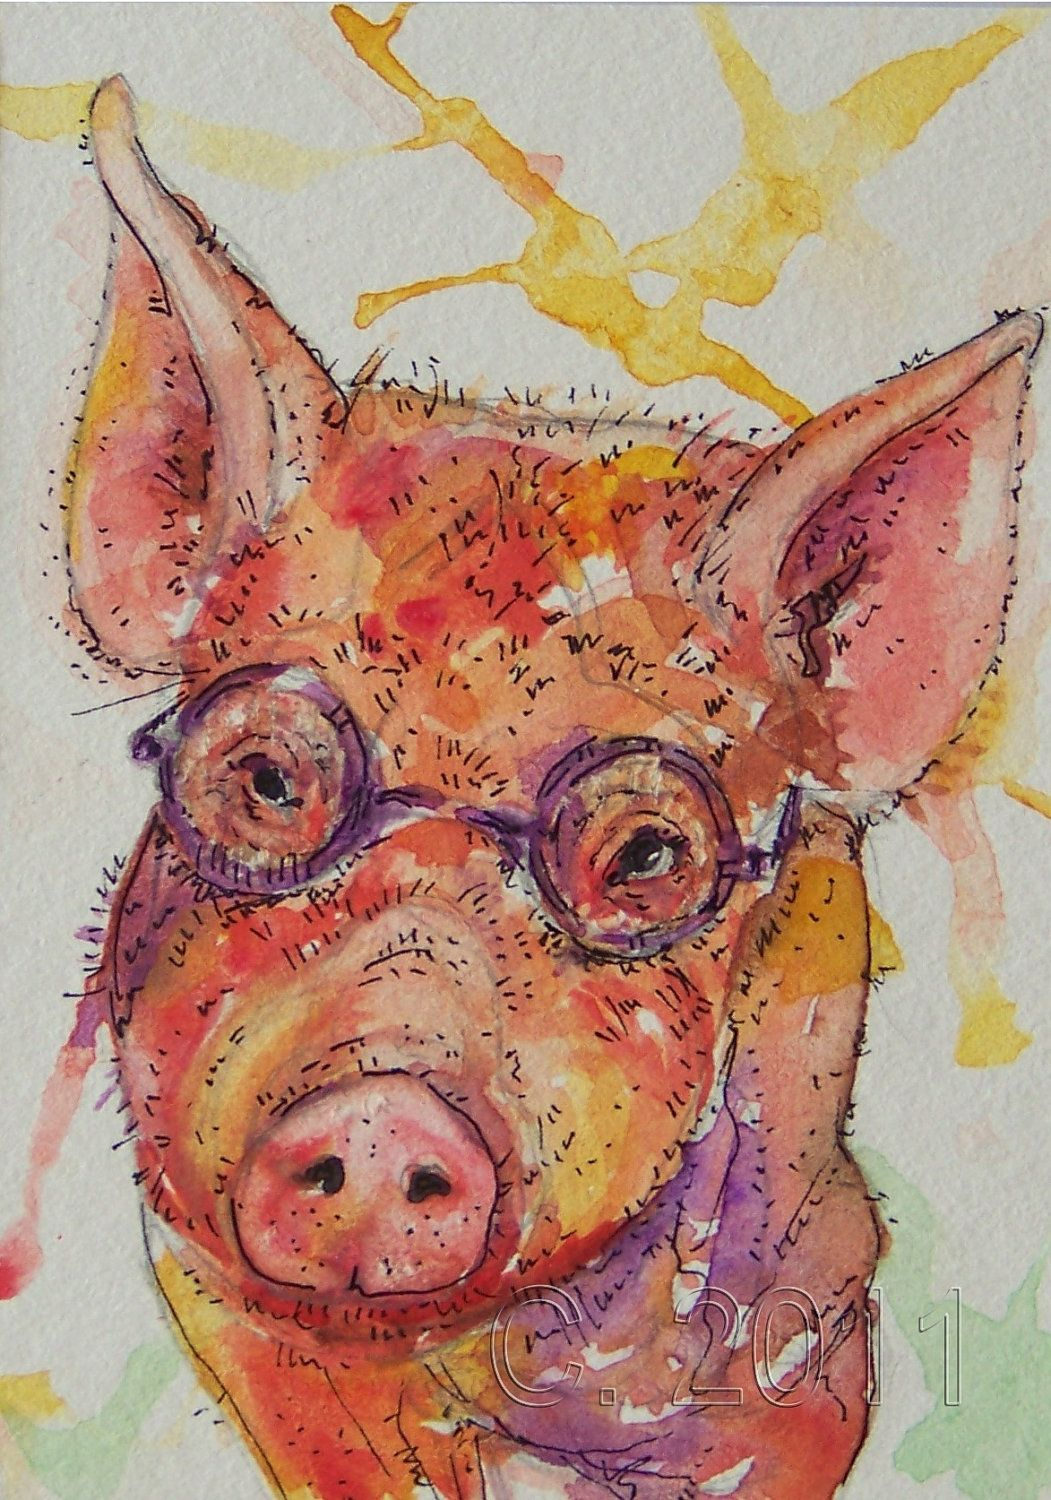 Pig with Glasses, Original ACEO Card - 10% to Search Dog Foundation if purchased in Sept.!